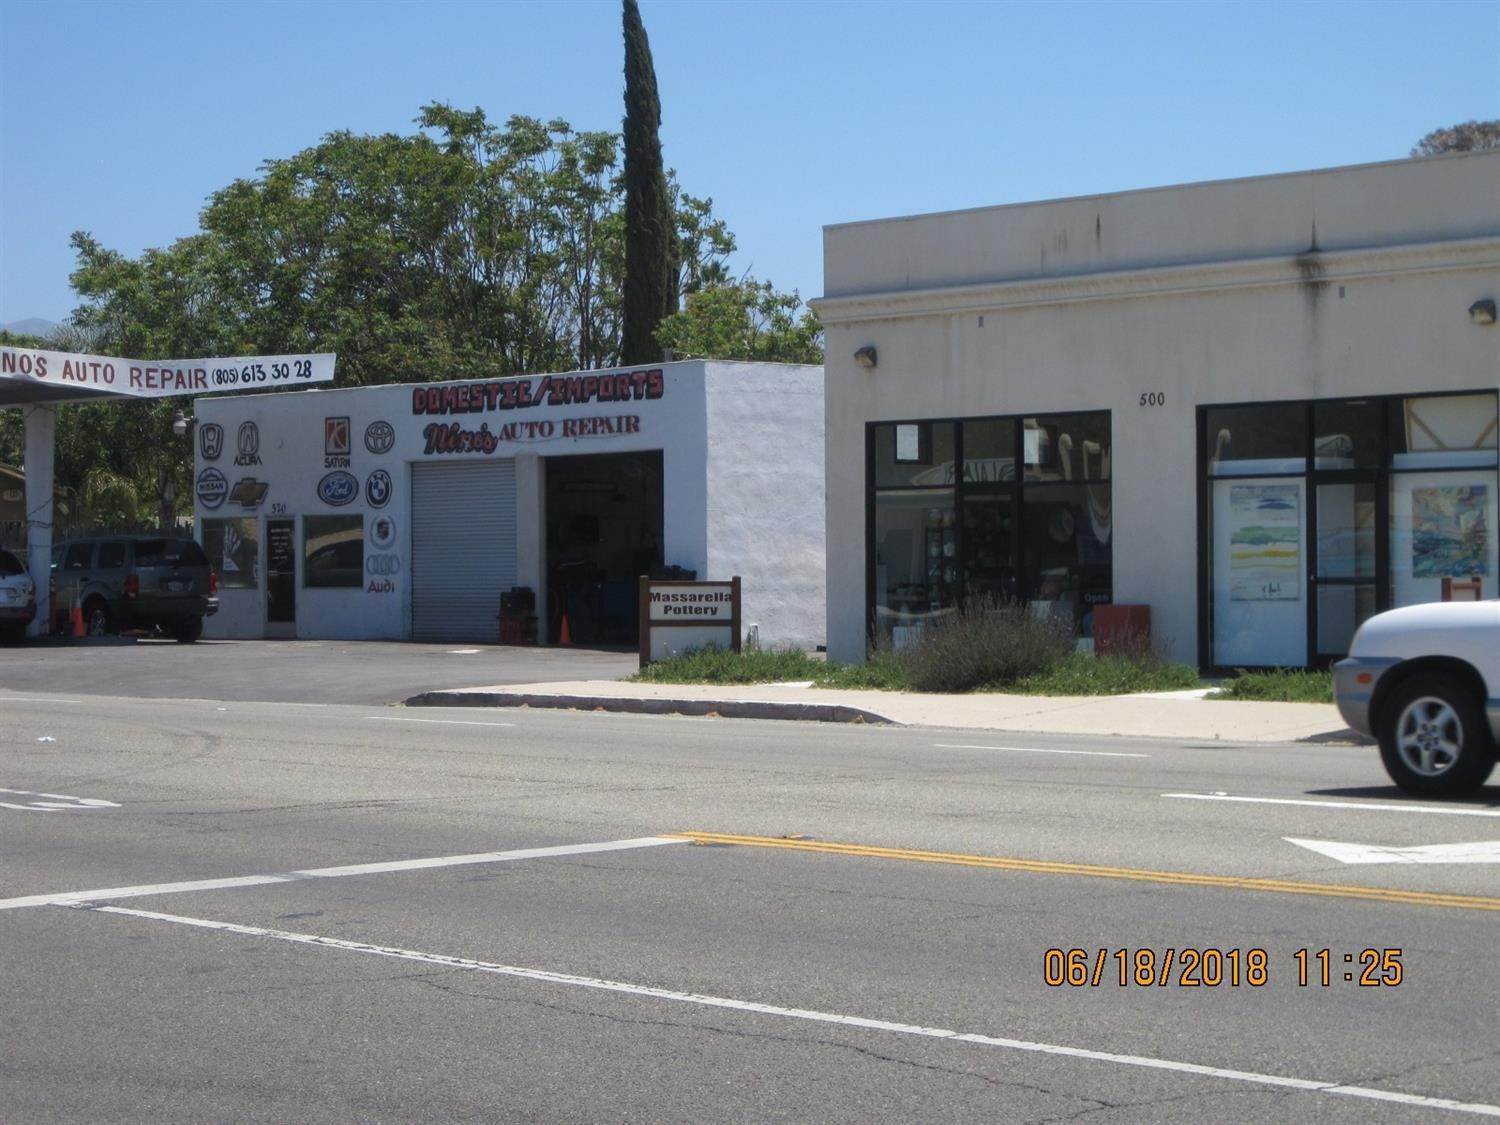 Commercial / Industrial for Sale at 500 N Ventura Avenue Oak View, California 93022 United States